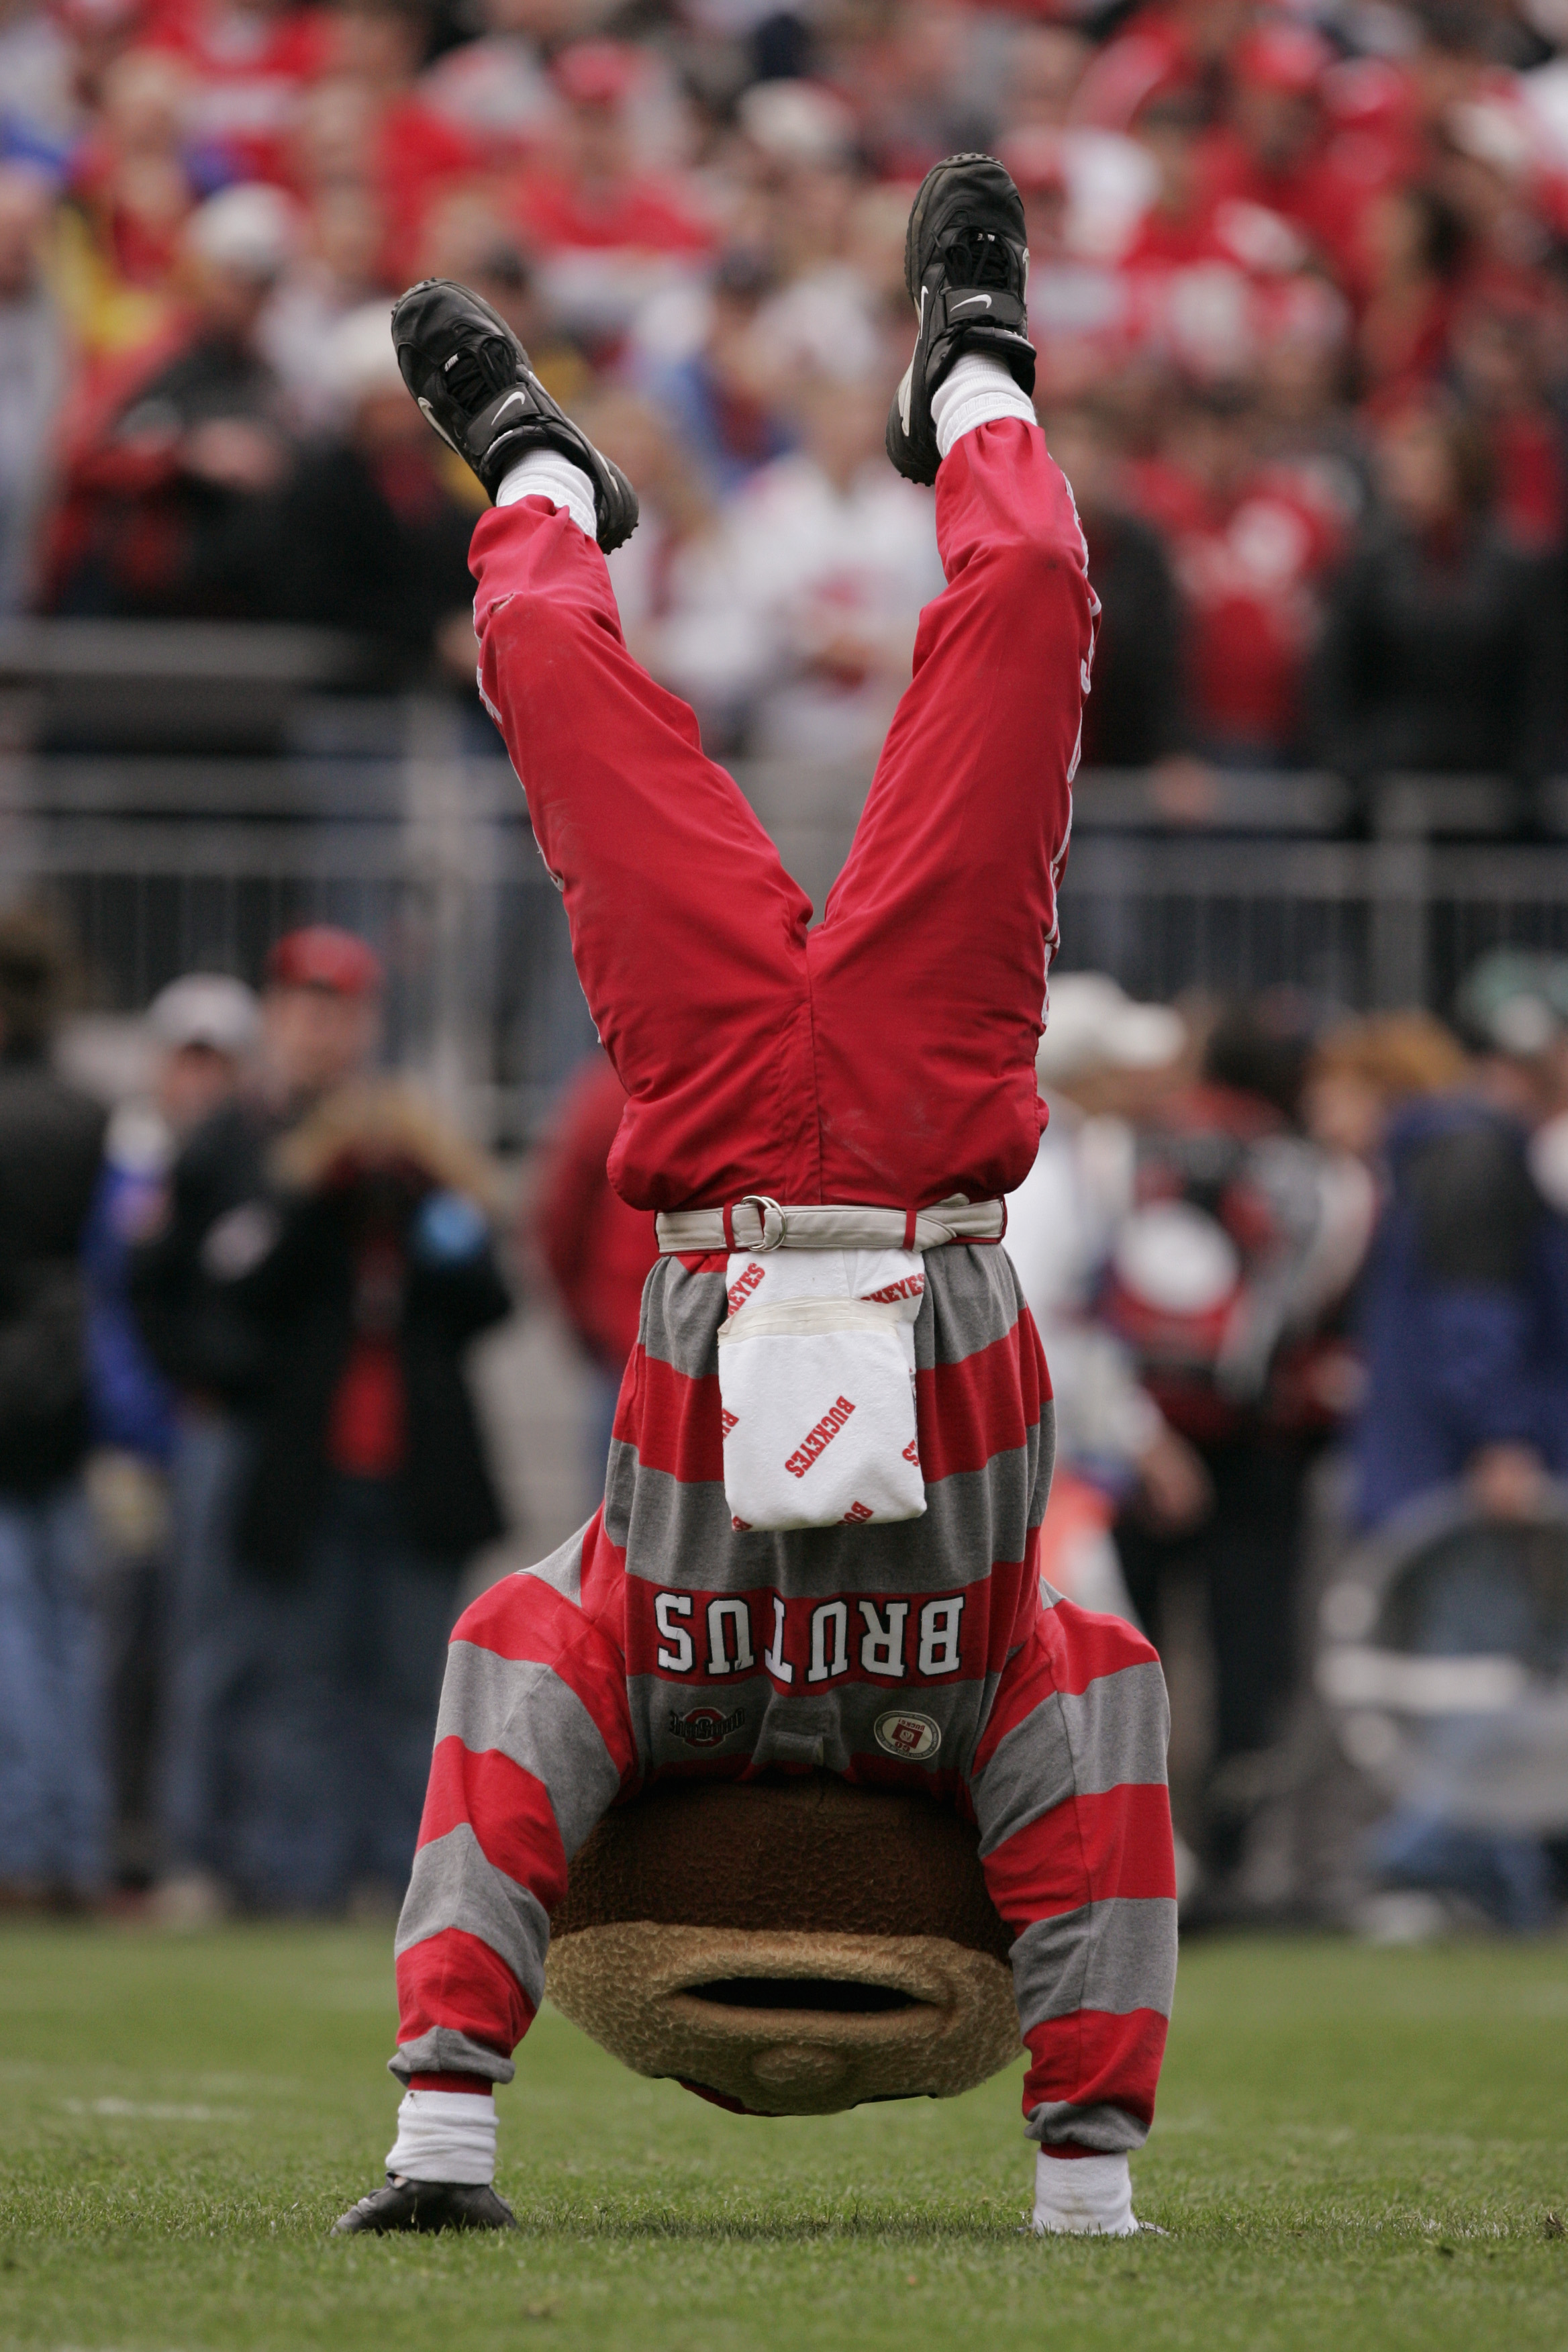 COLUMBUS, OH - NOVEMBER 20:  Brutus Buckeye, the mascot of the Ohio State University Buckeyes, performs during the game against the University of Michigan Wolverines on November 20, 2004 at Ohio Stadium in Columbus, Ohio.  Ohio State defeated Michigan 37-